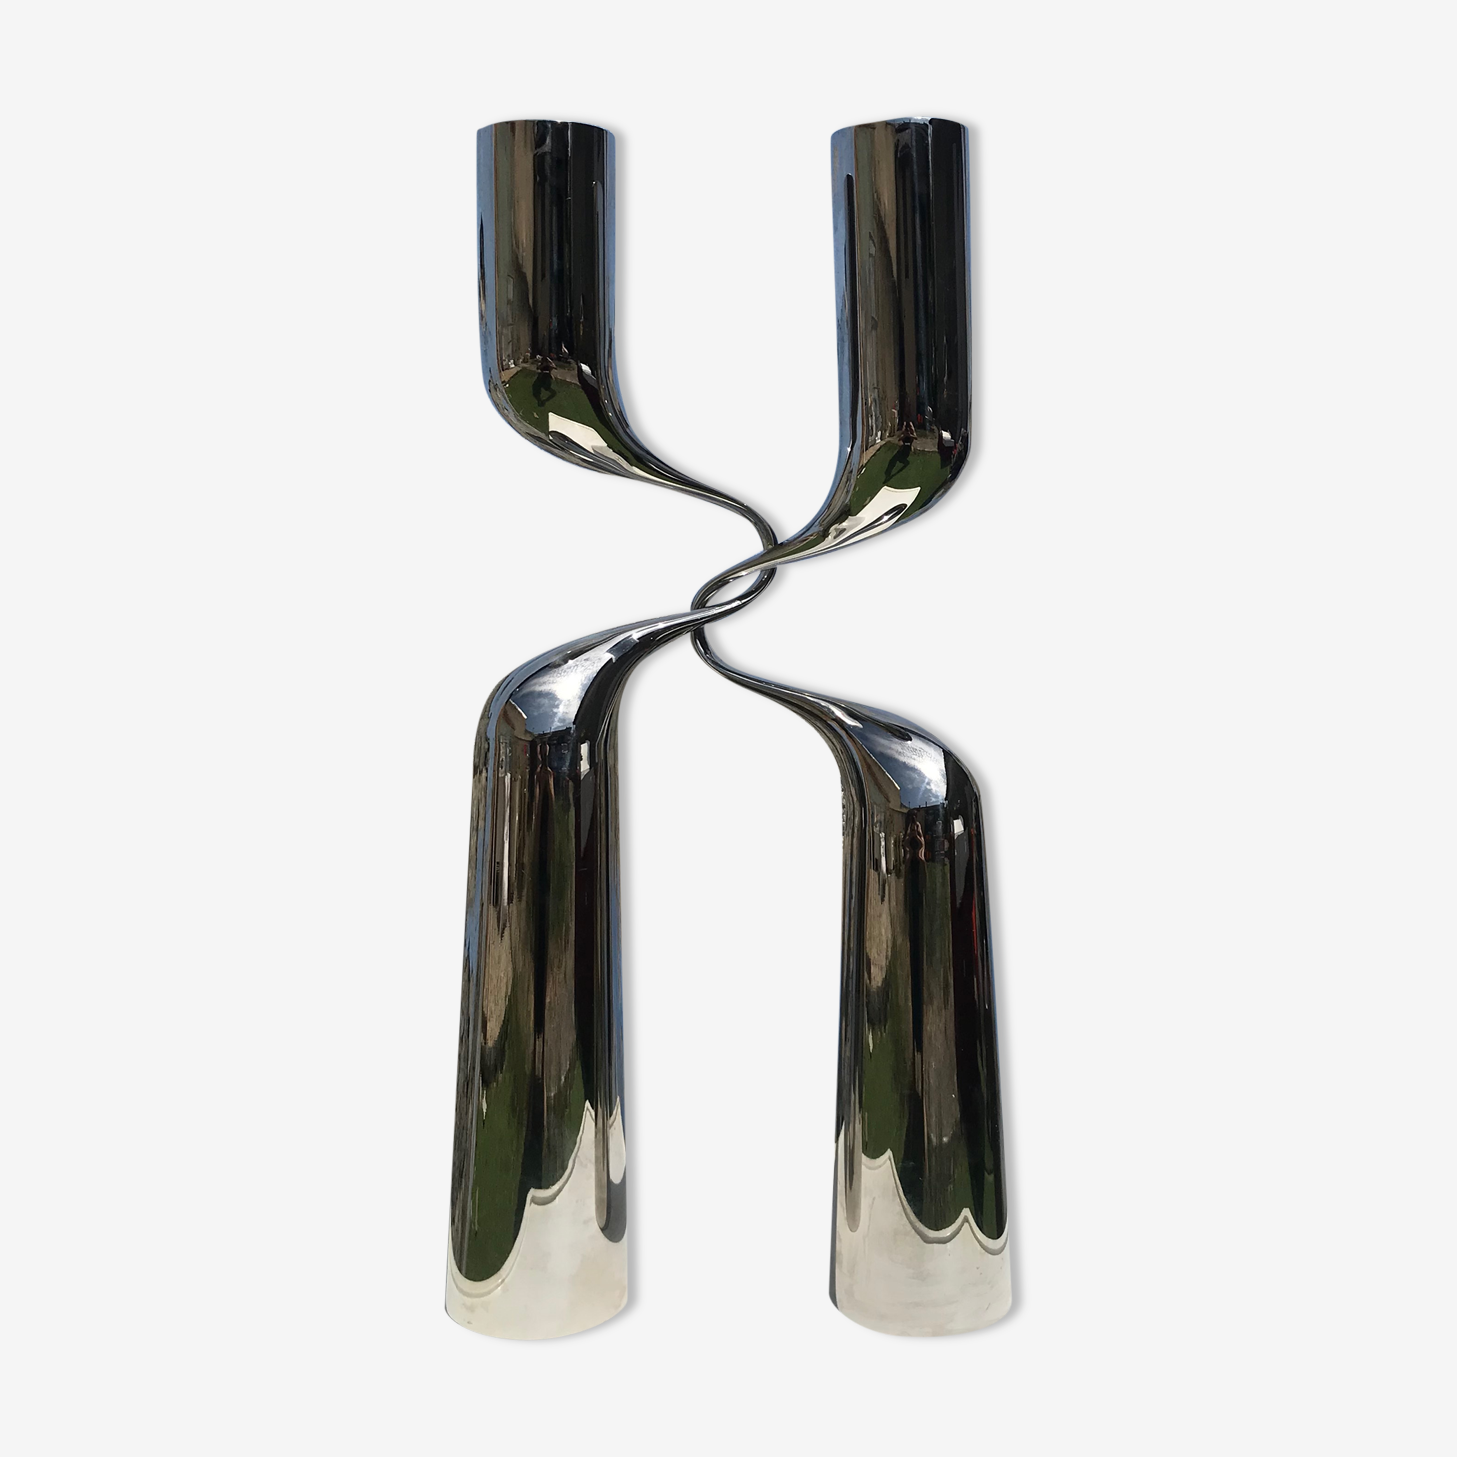 XXL Design candle holders